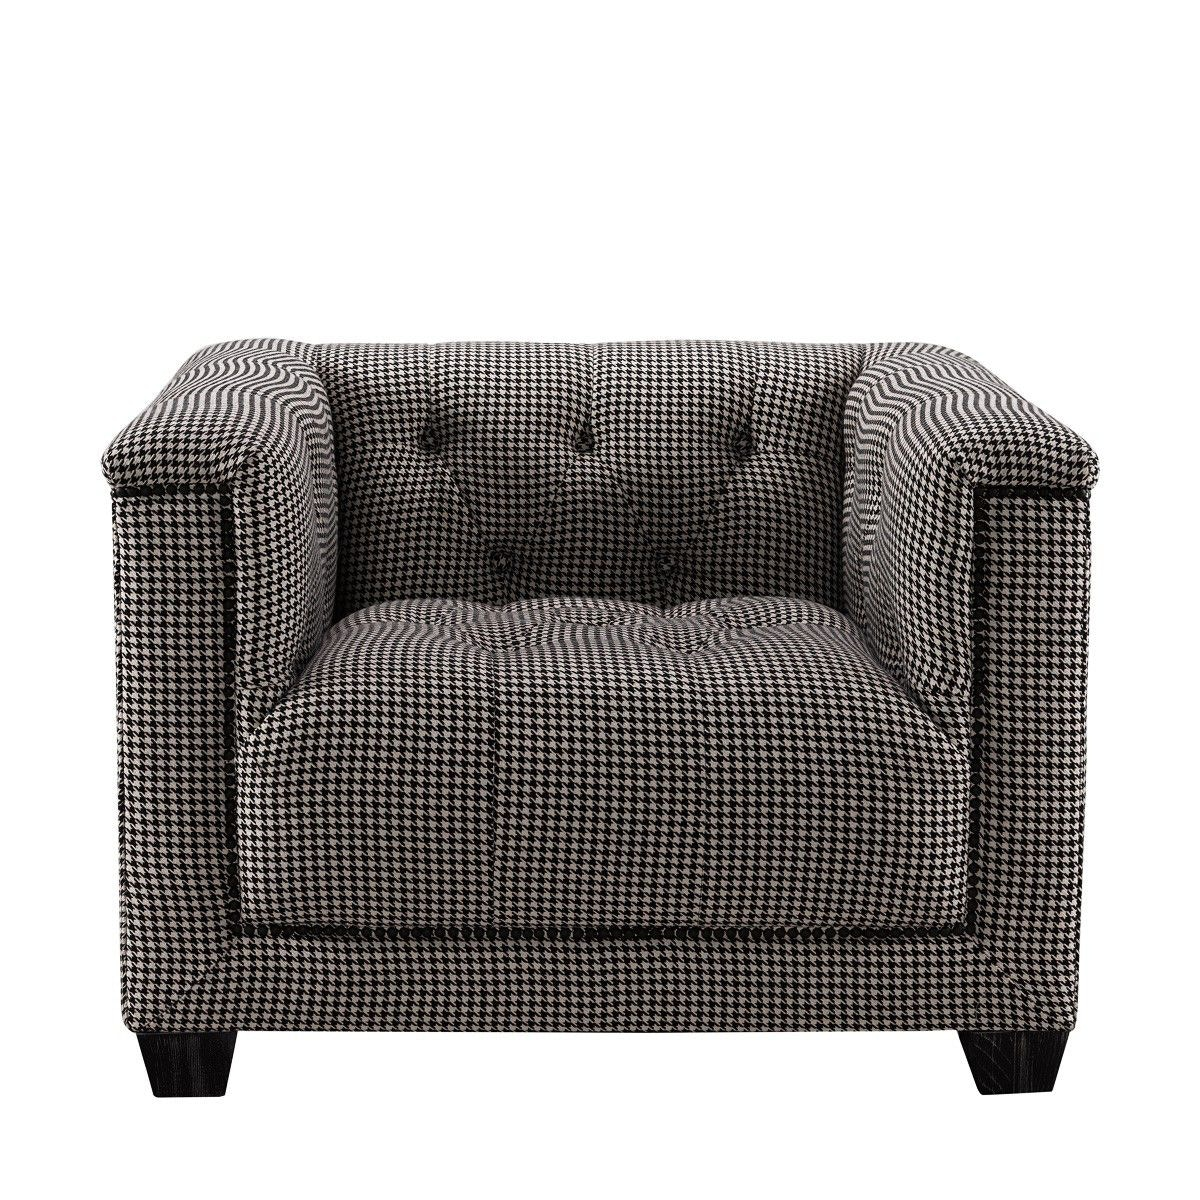 Curations Limited Bergamo Arm Chair 7841.0036.B018 From Walter E. Smithe  Furniture + Design